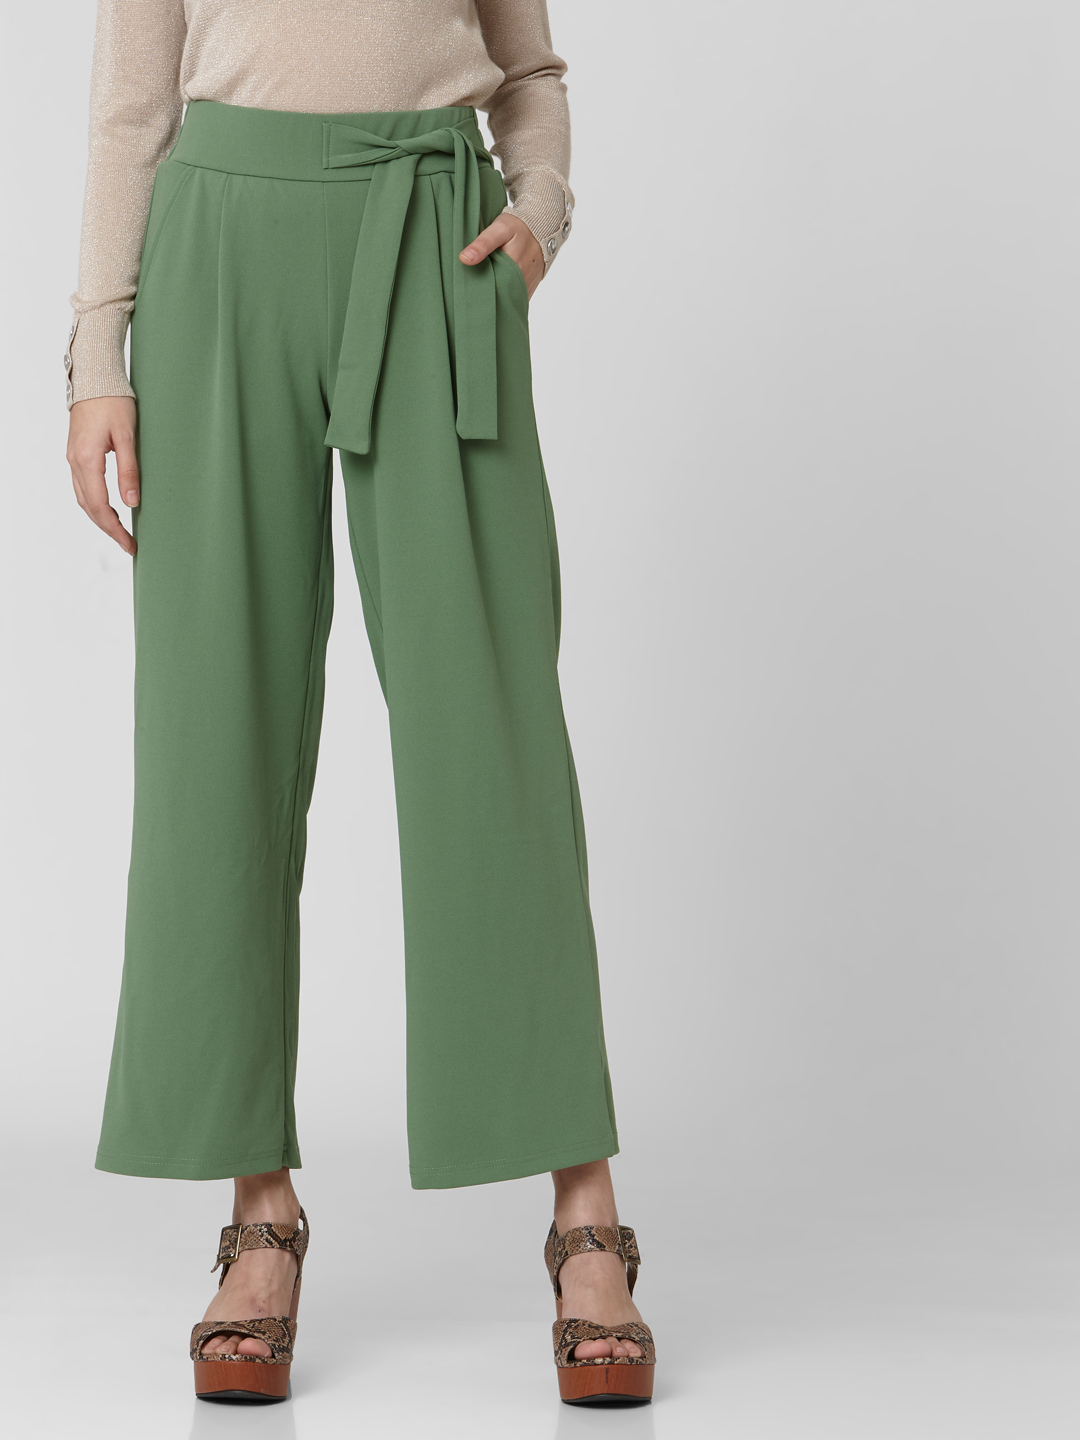 Green High Rise Pants